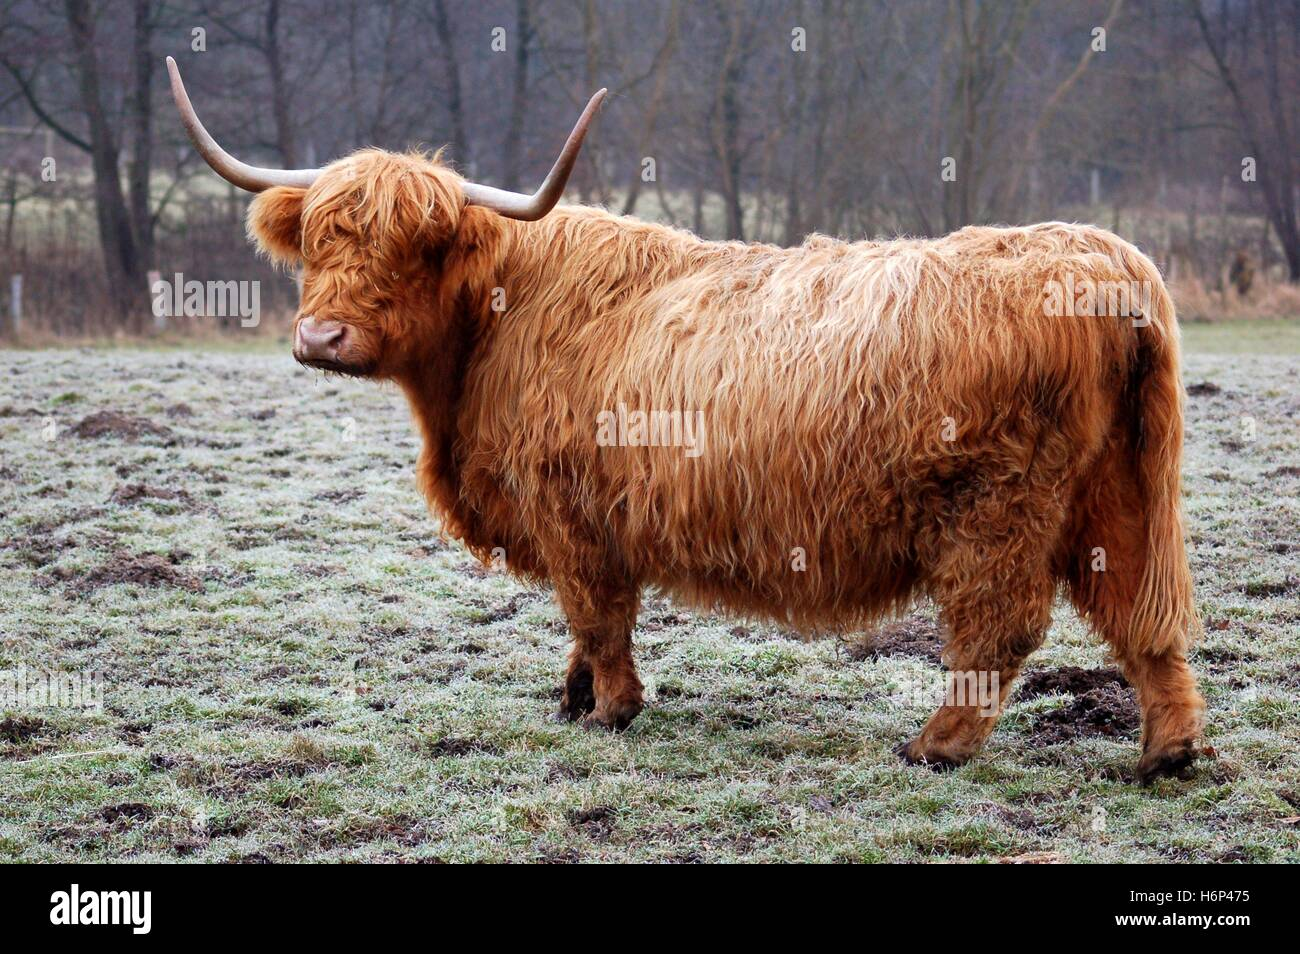 highland cattle - Stock Image